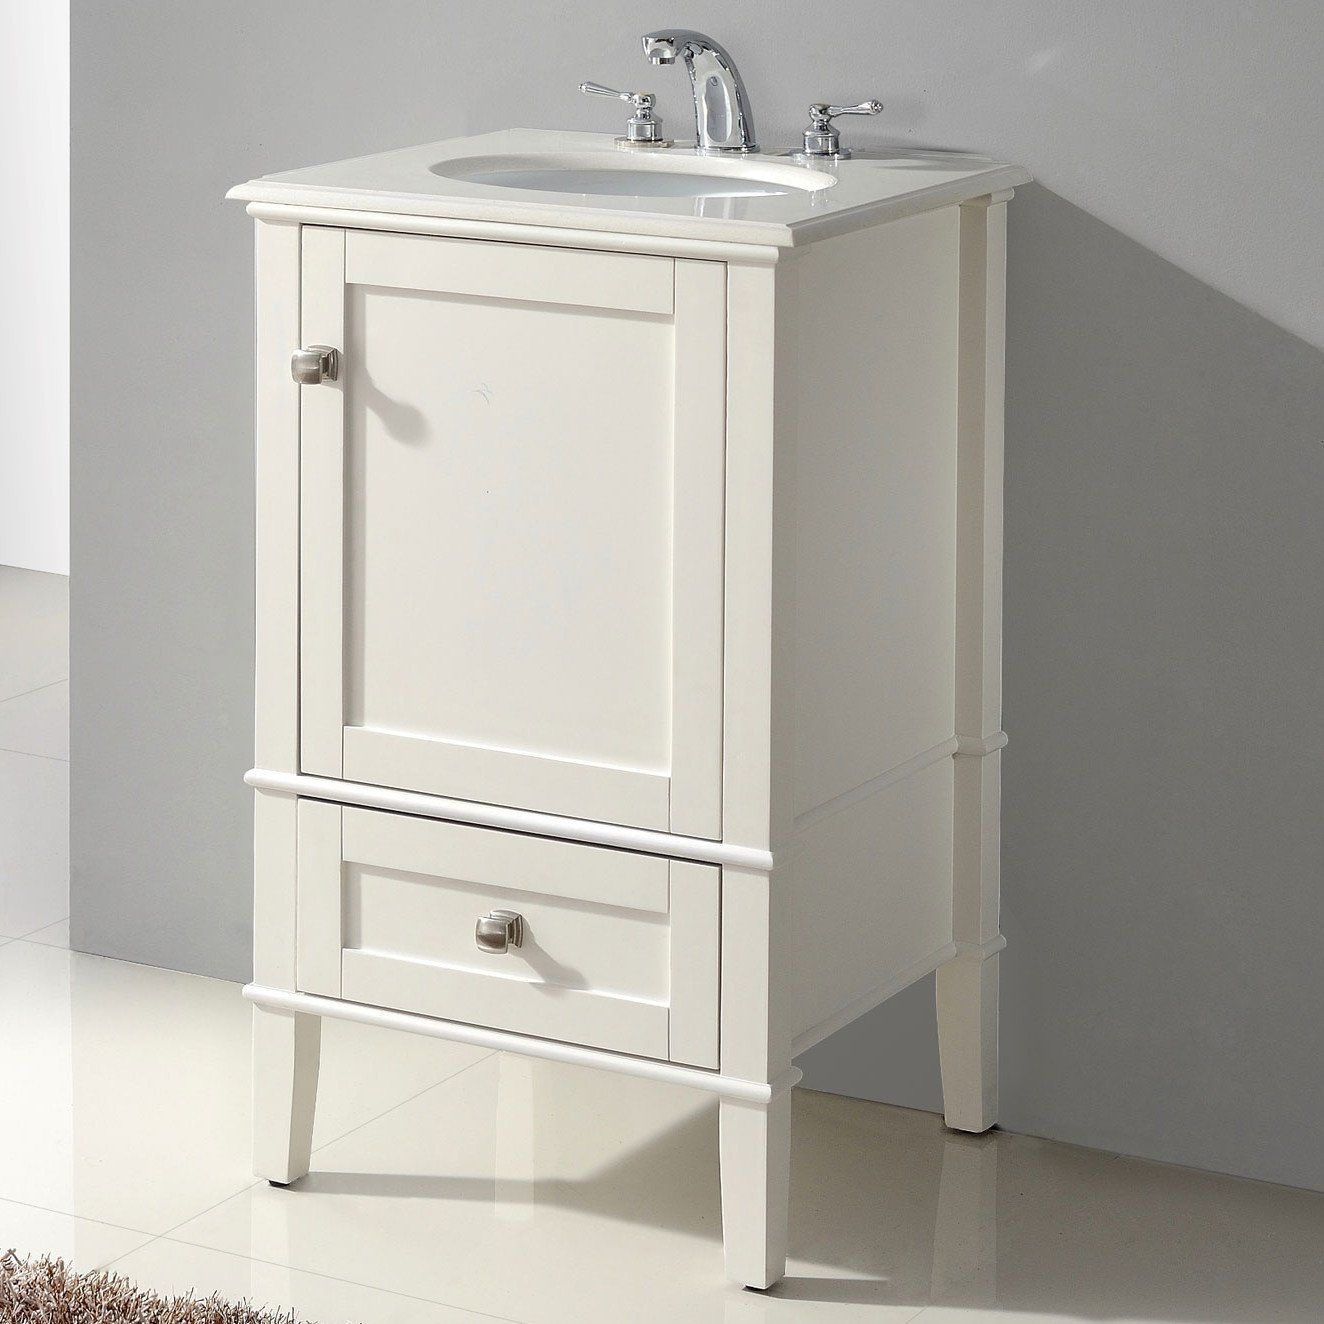 This 21 Inch Single Bathroom Vanity Set With Off White Marble Top Would Be A Great Additio 20 Inch Bathroom Vanity Small Bathroom Vanities Bathroom Sink Vanity